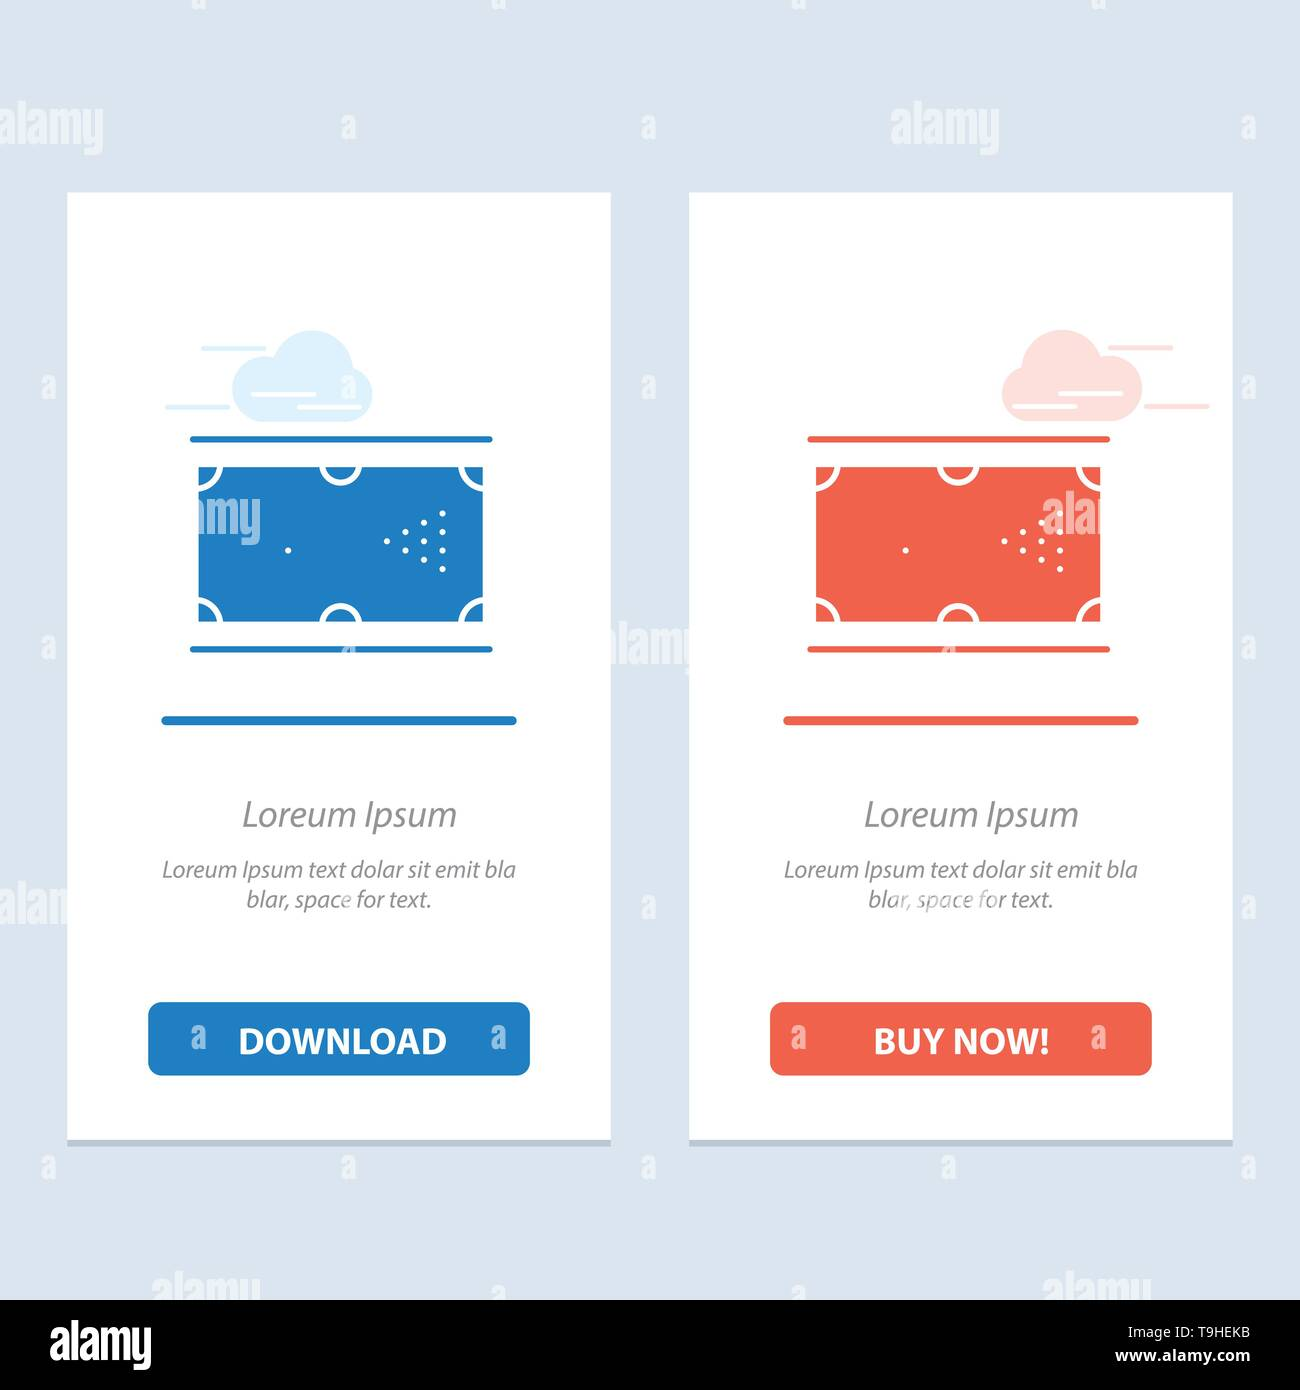 Billiards, Cue, Game, Pocket, Pool  Blue and Red Download and Buy Now web Widget Card Template - Stock Image